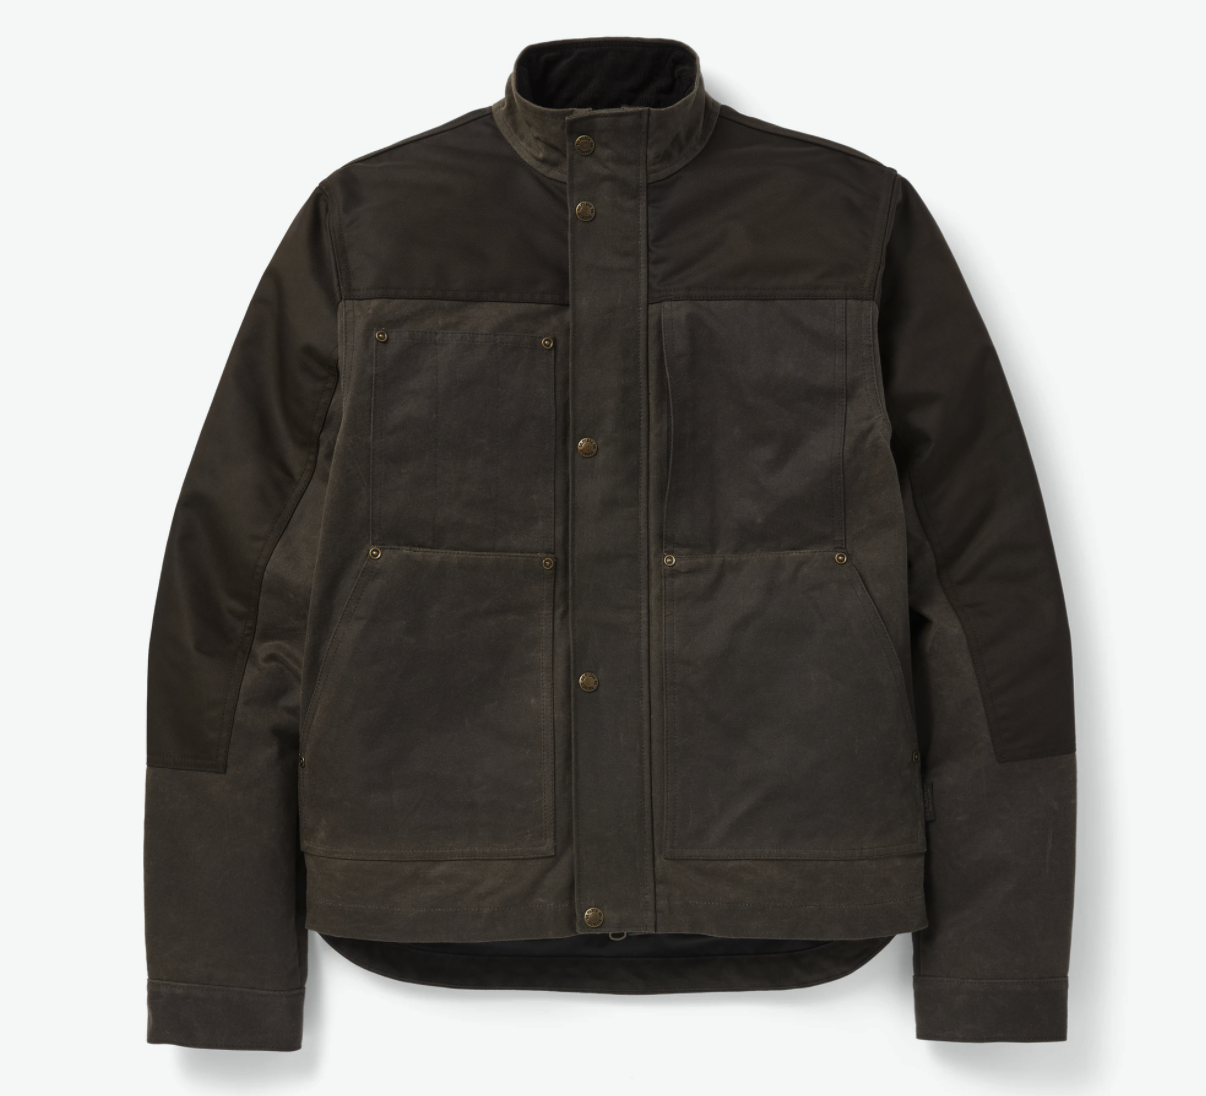 Filson's Alcan Canvas Cruiser is designed to be one of the only jackets you'll need on your journey. The Cruiser is built with heavy-duty cotton canvas that has been thoroughly saturated with a paraffin wax mixture that will keep you protected from any kind of foul weather. This jacket is nylon lined and comes with a reinforcing layer of nylon on the soldiers and upper arms.This material is great for abrasion resistance and durability. With a corduroy lined standing collar that is perfectly designed to hit just below helmet height, this jacket is as stylish and comfortable as it is durable. - The Alcan Canvas Cruiser costs $495 and will last you a very, very long time.